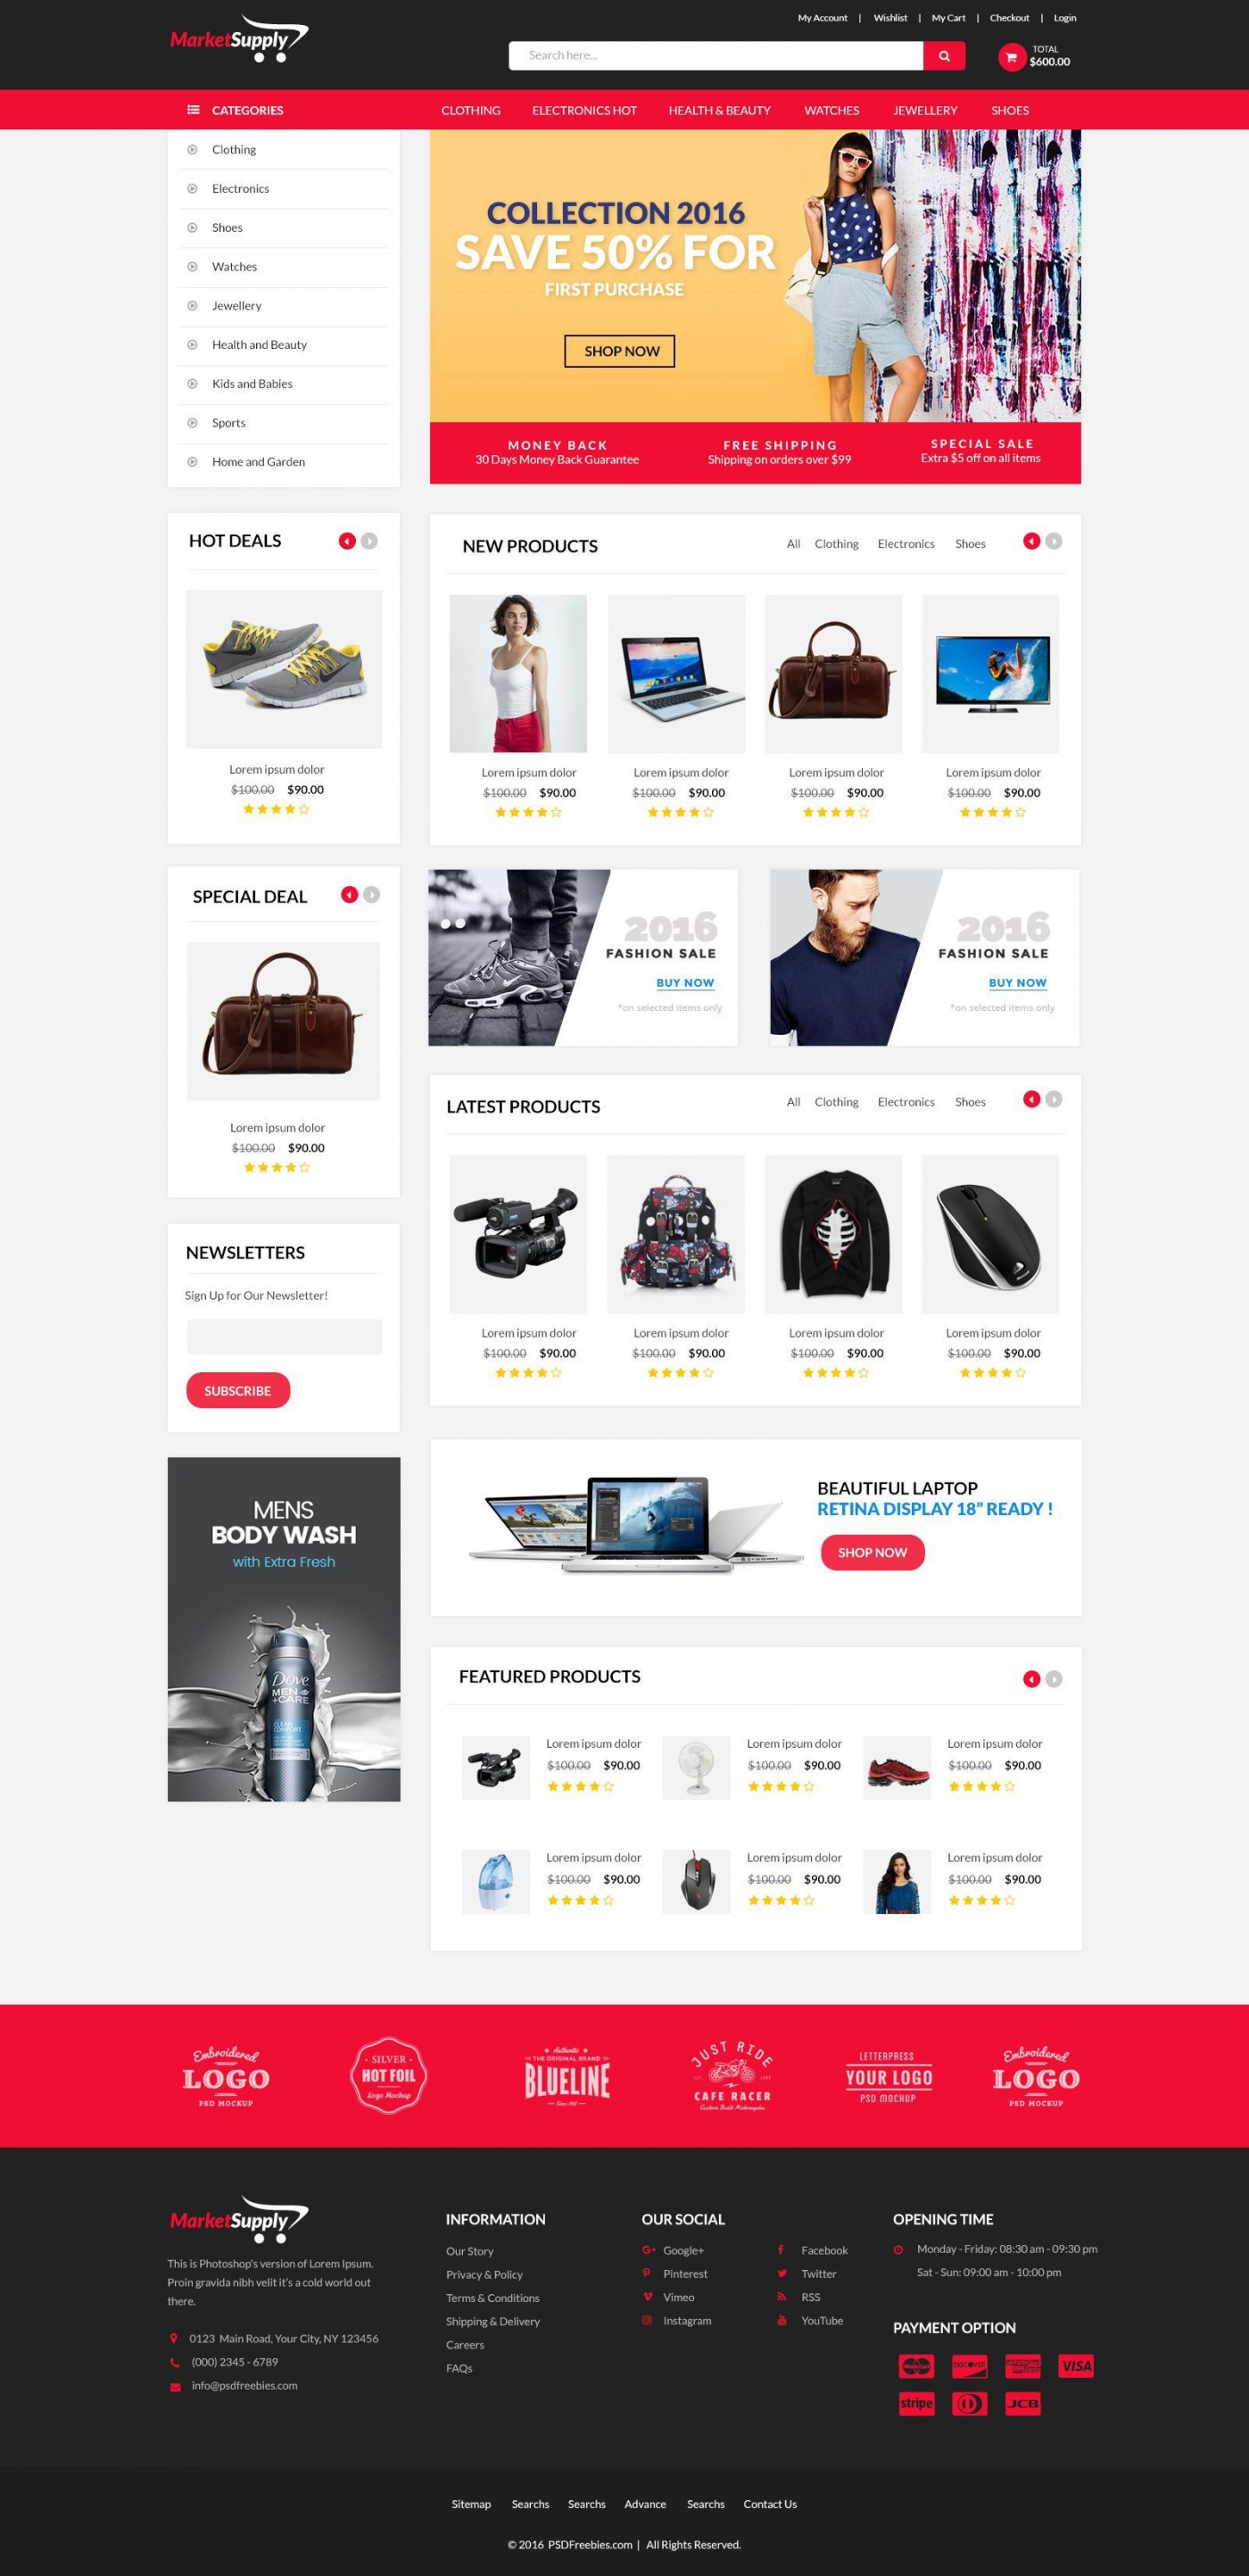 000 Shocking Free Php Website Template Idea  Download And Cs Full Theme1400